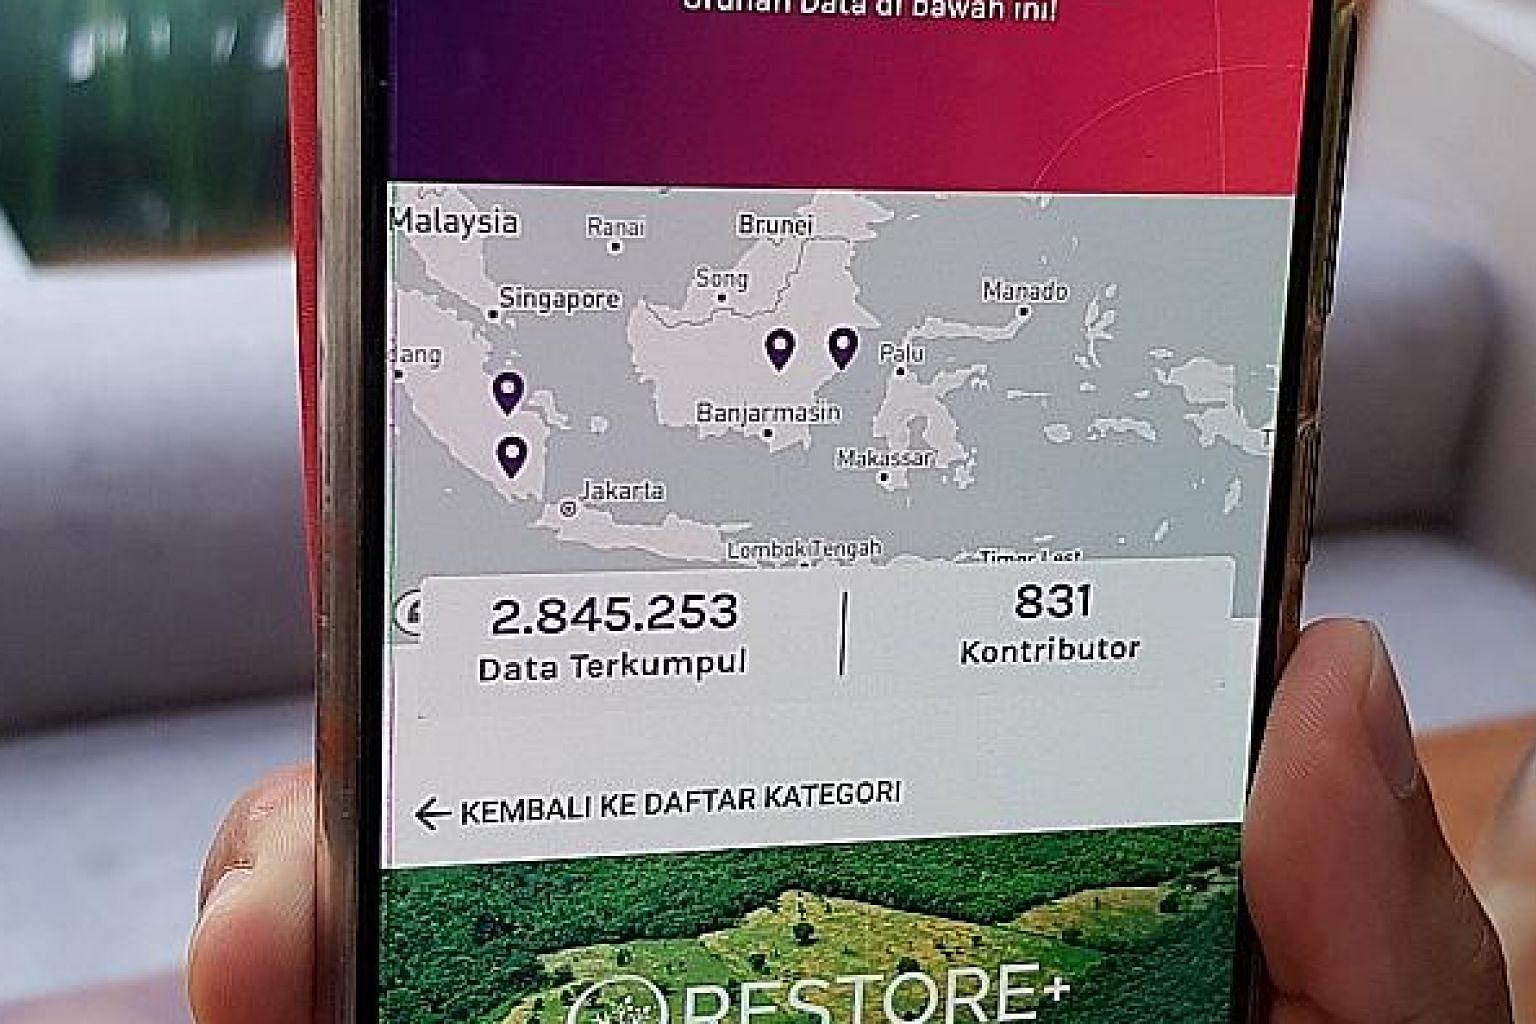 Crowdsourcing app Urundata has gained more than 800 users since it was launched in November last year.